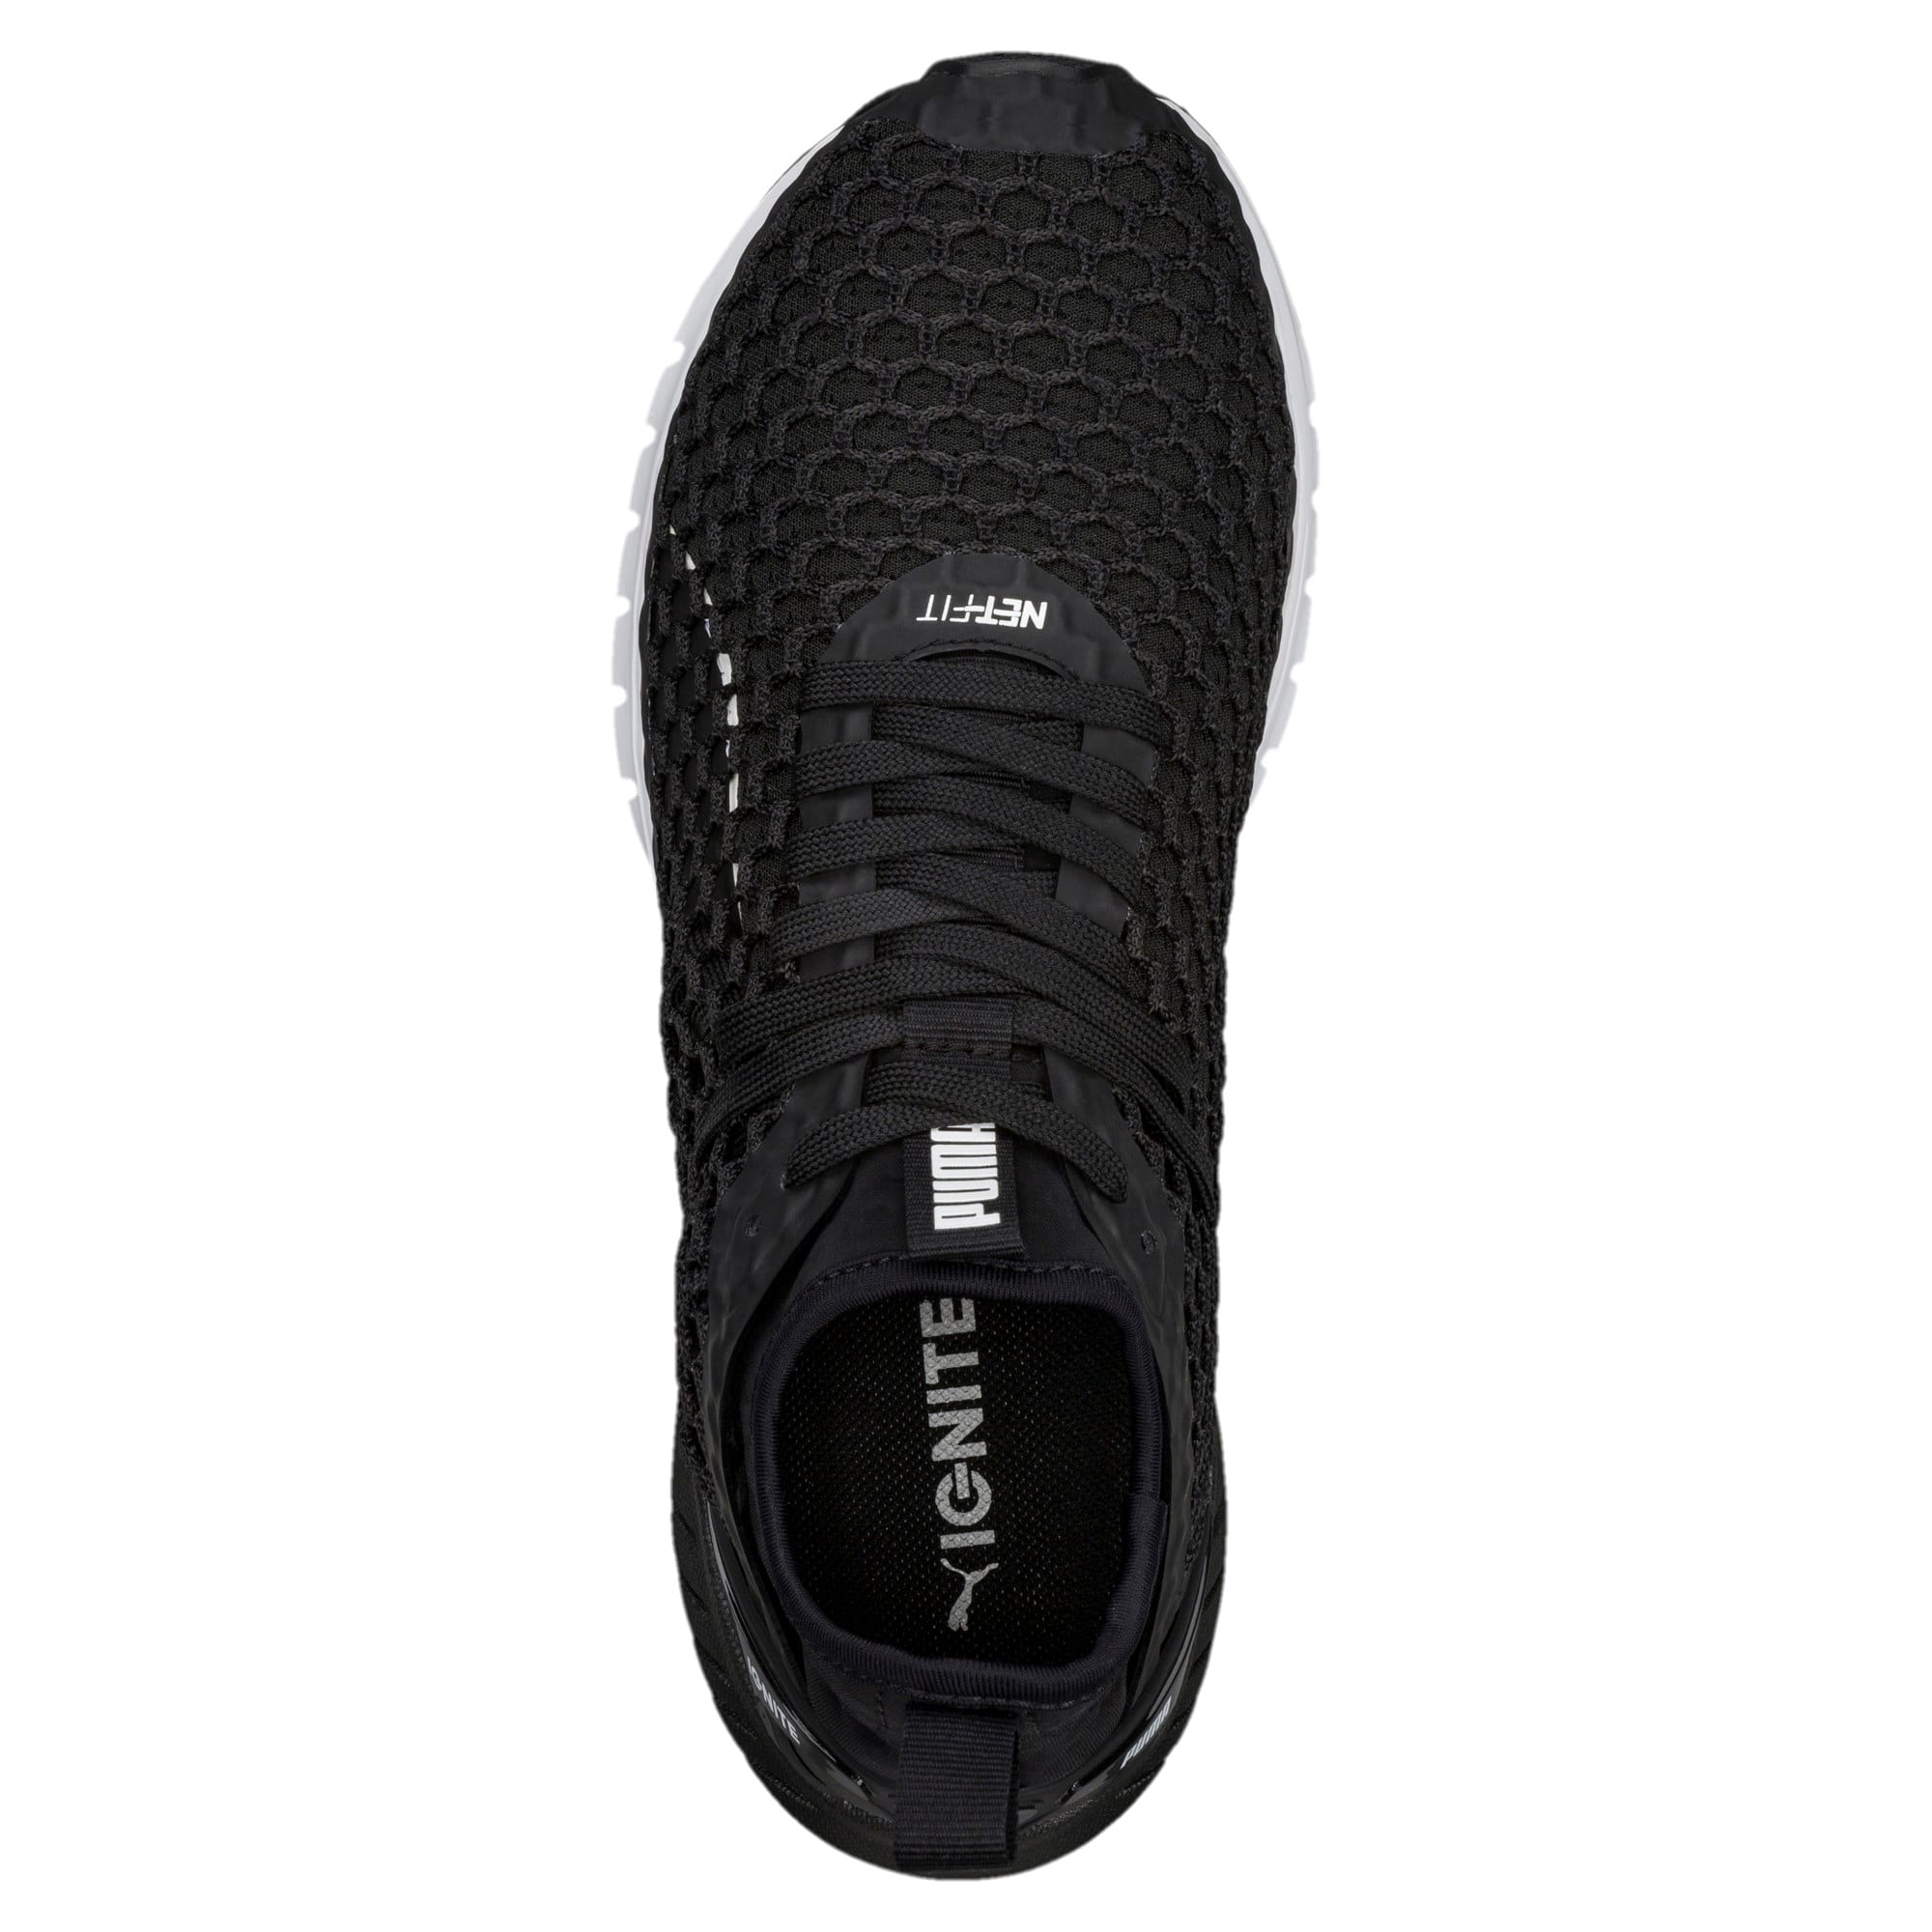 Thumbnail 5 of IGNITE Dual NETFIT Women's Running Shoes, Puma Black-Puma White, medium-IND